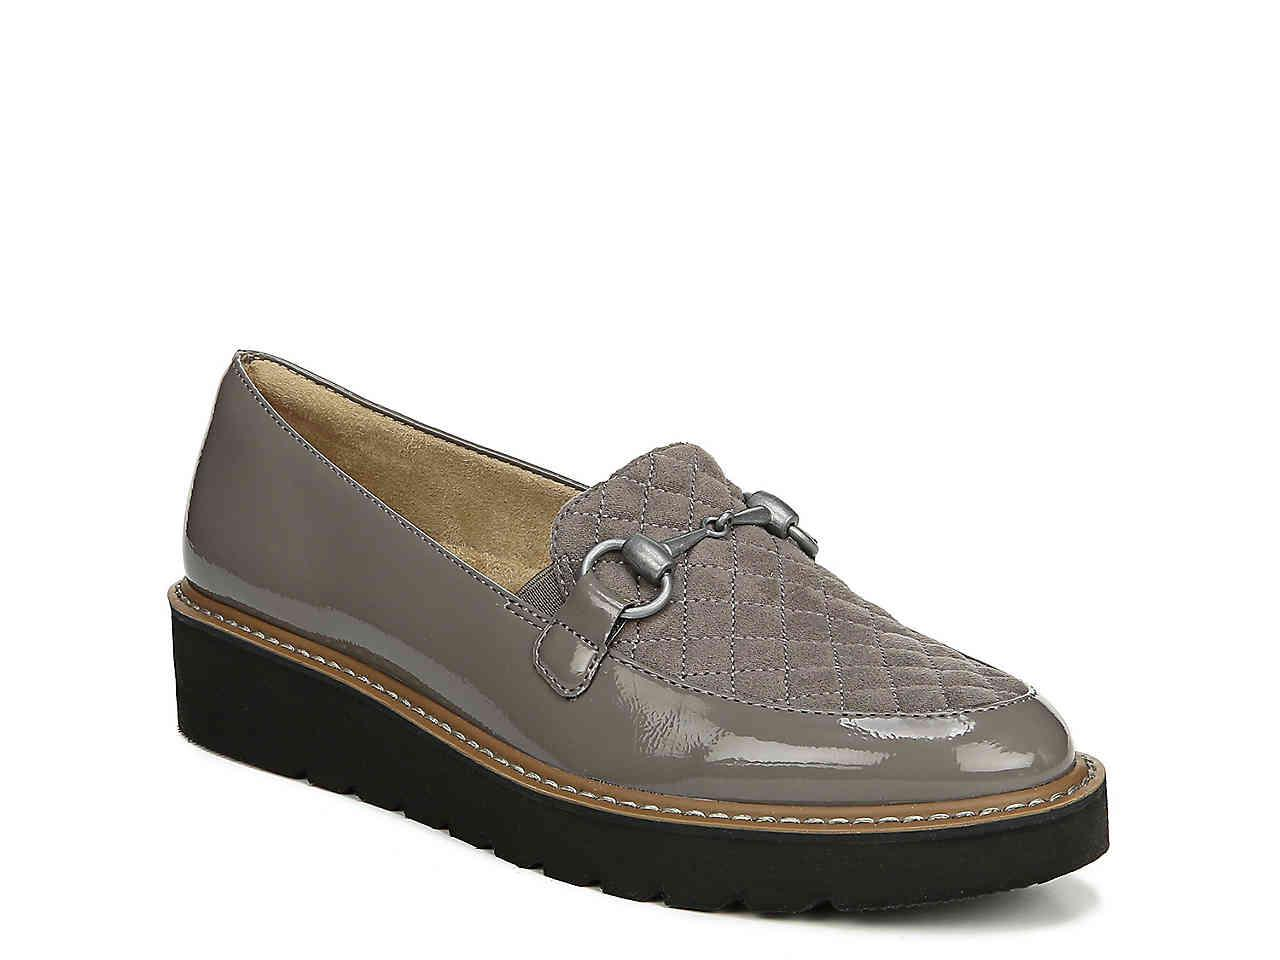 f017f9fde4e Lyst - Naturalizer Edina Loafer in Gray